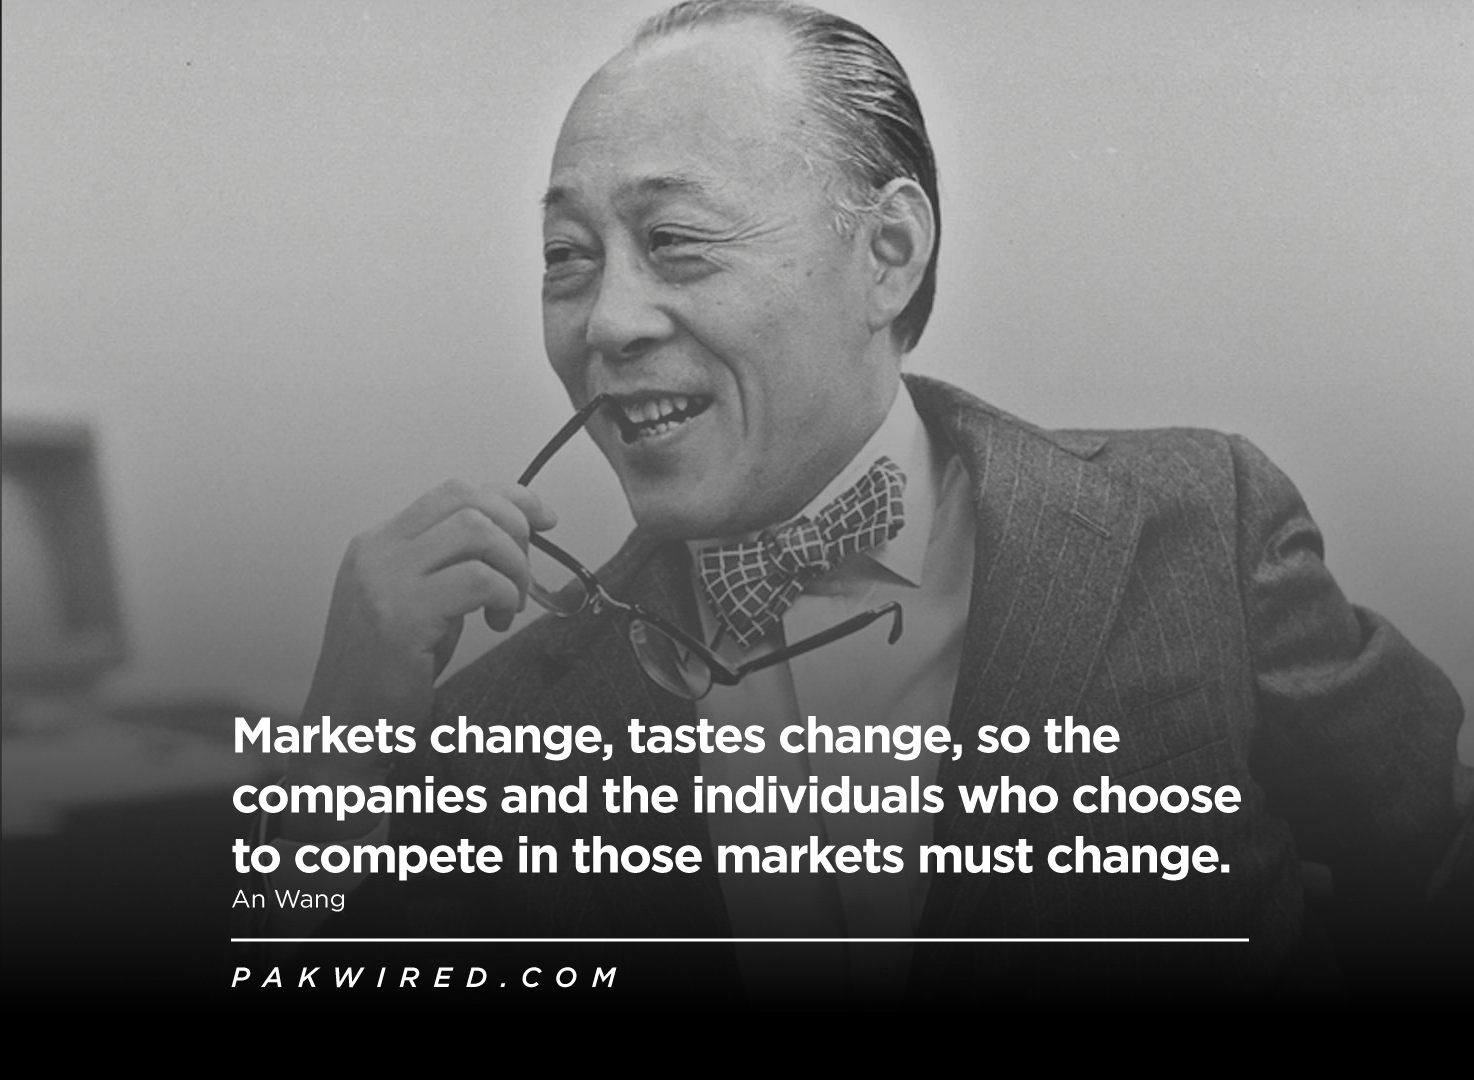 Markets change, tastes change, so the companies and the individuals who choose to compete in those markets must change